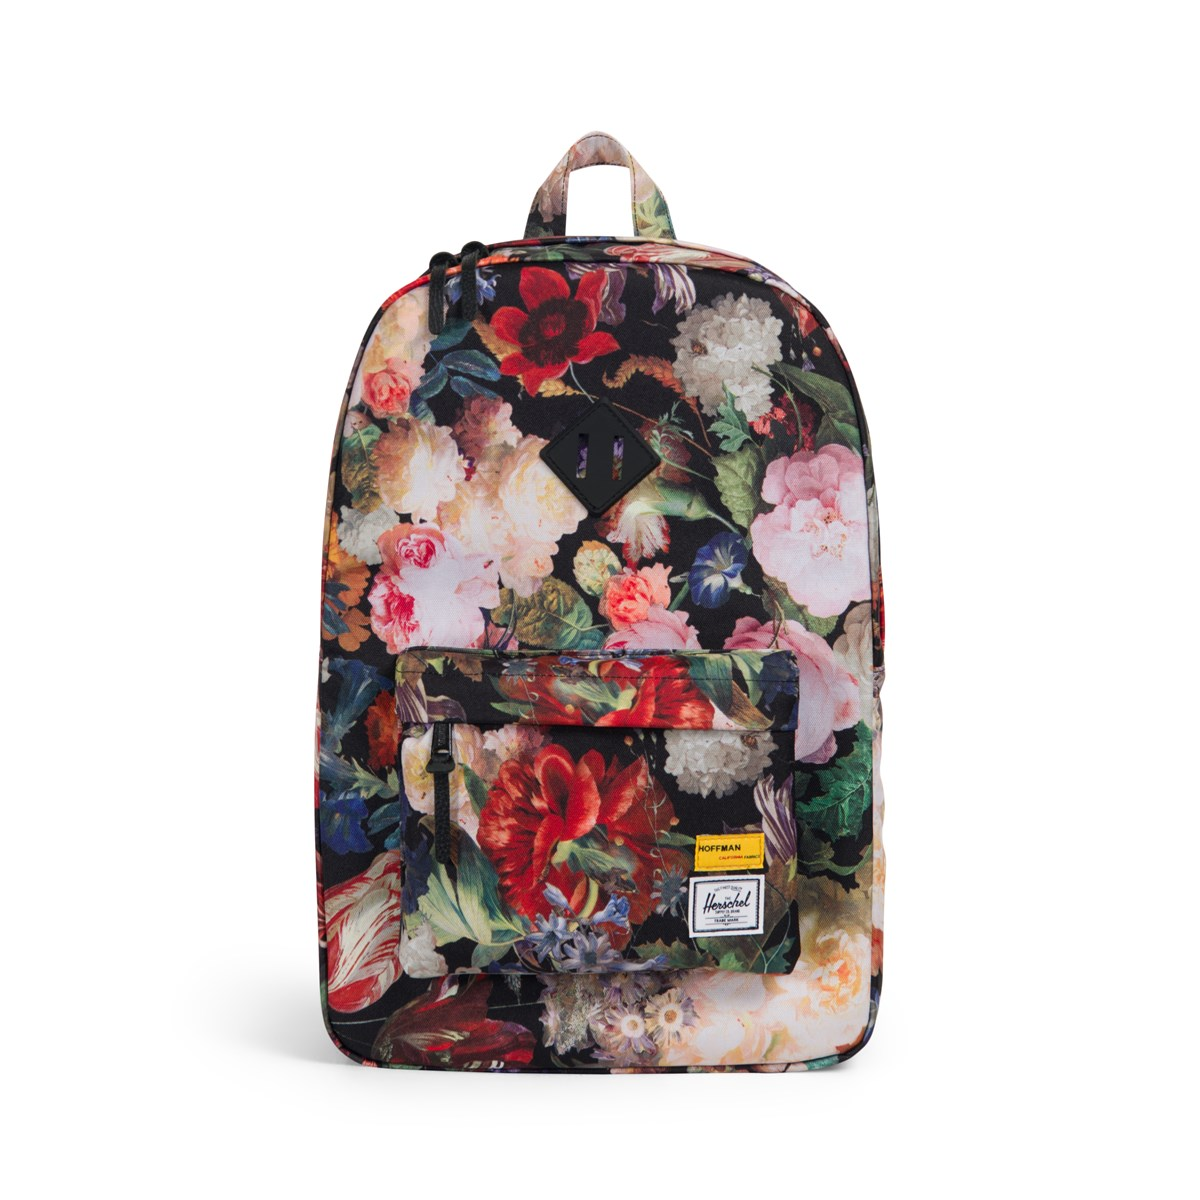 80235b33dd8 Hoffman Collection Heritage Backpack in Floral. Previous. default view   ALT1  ALT2